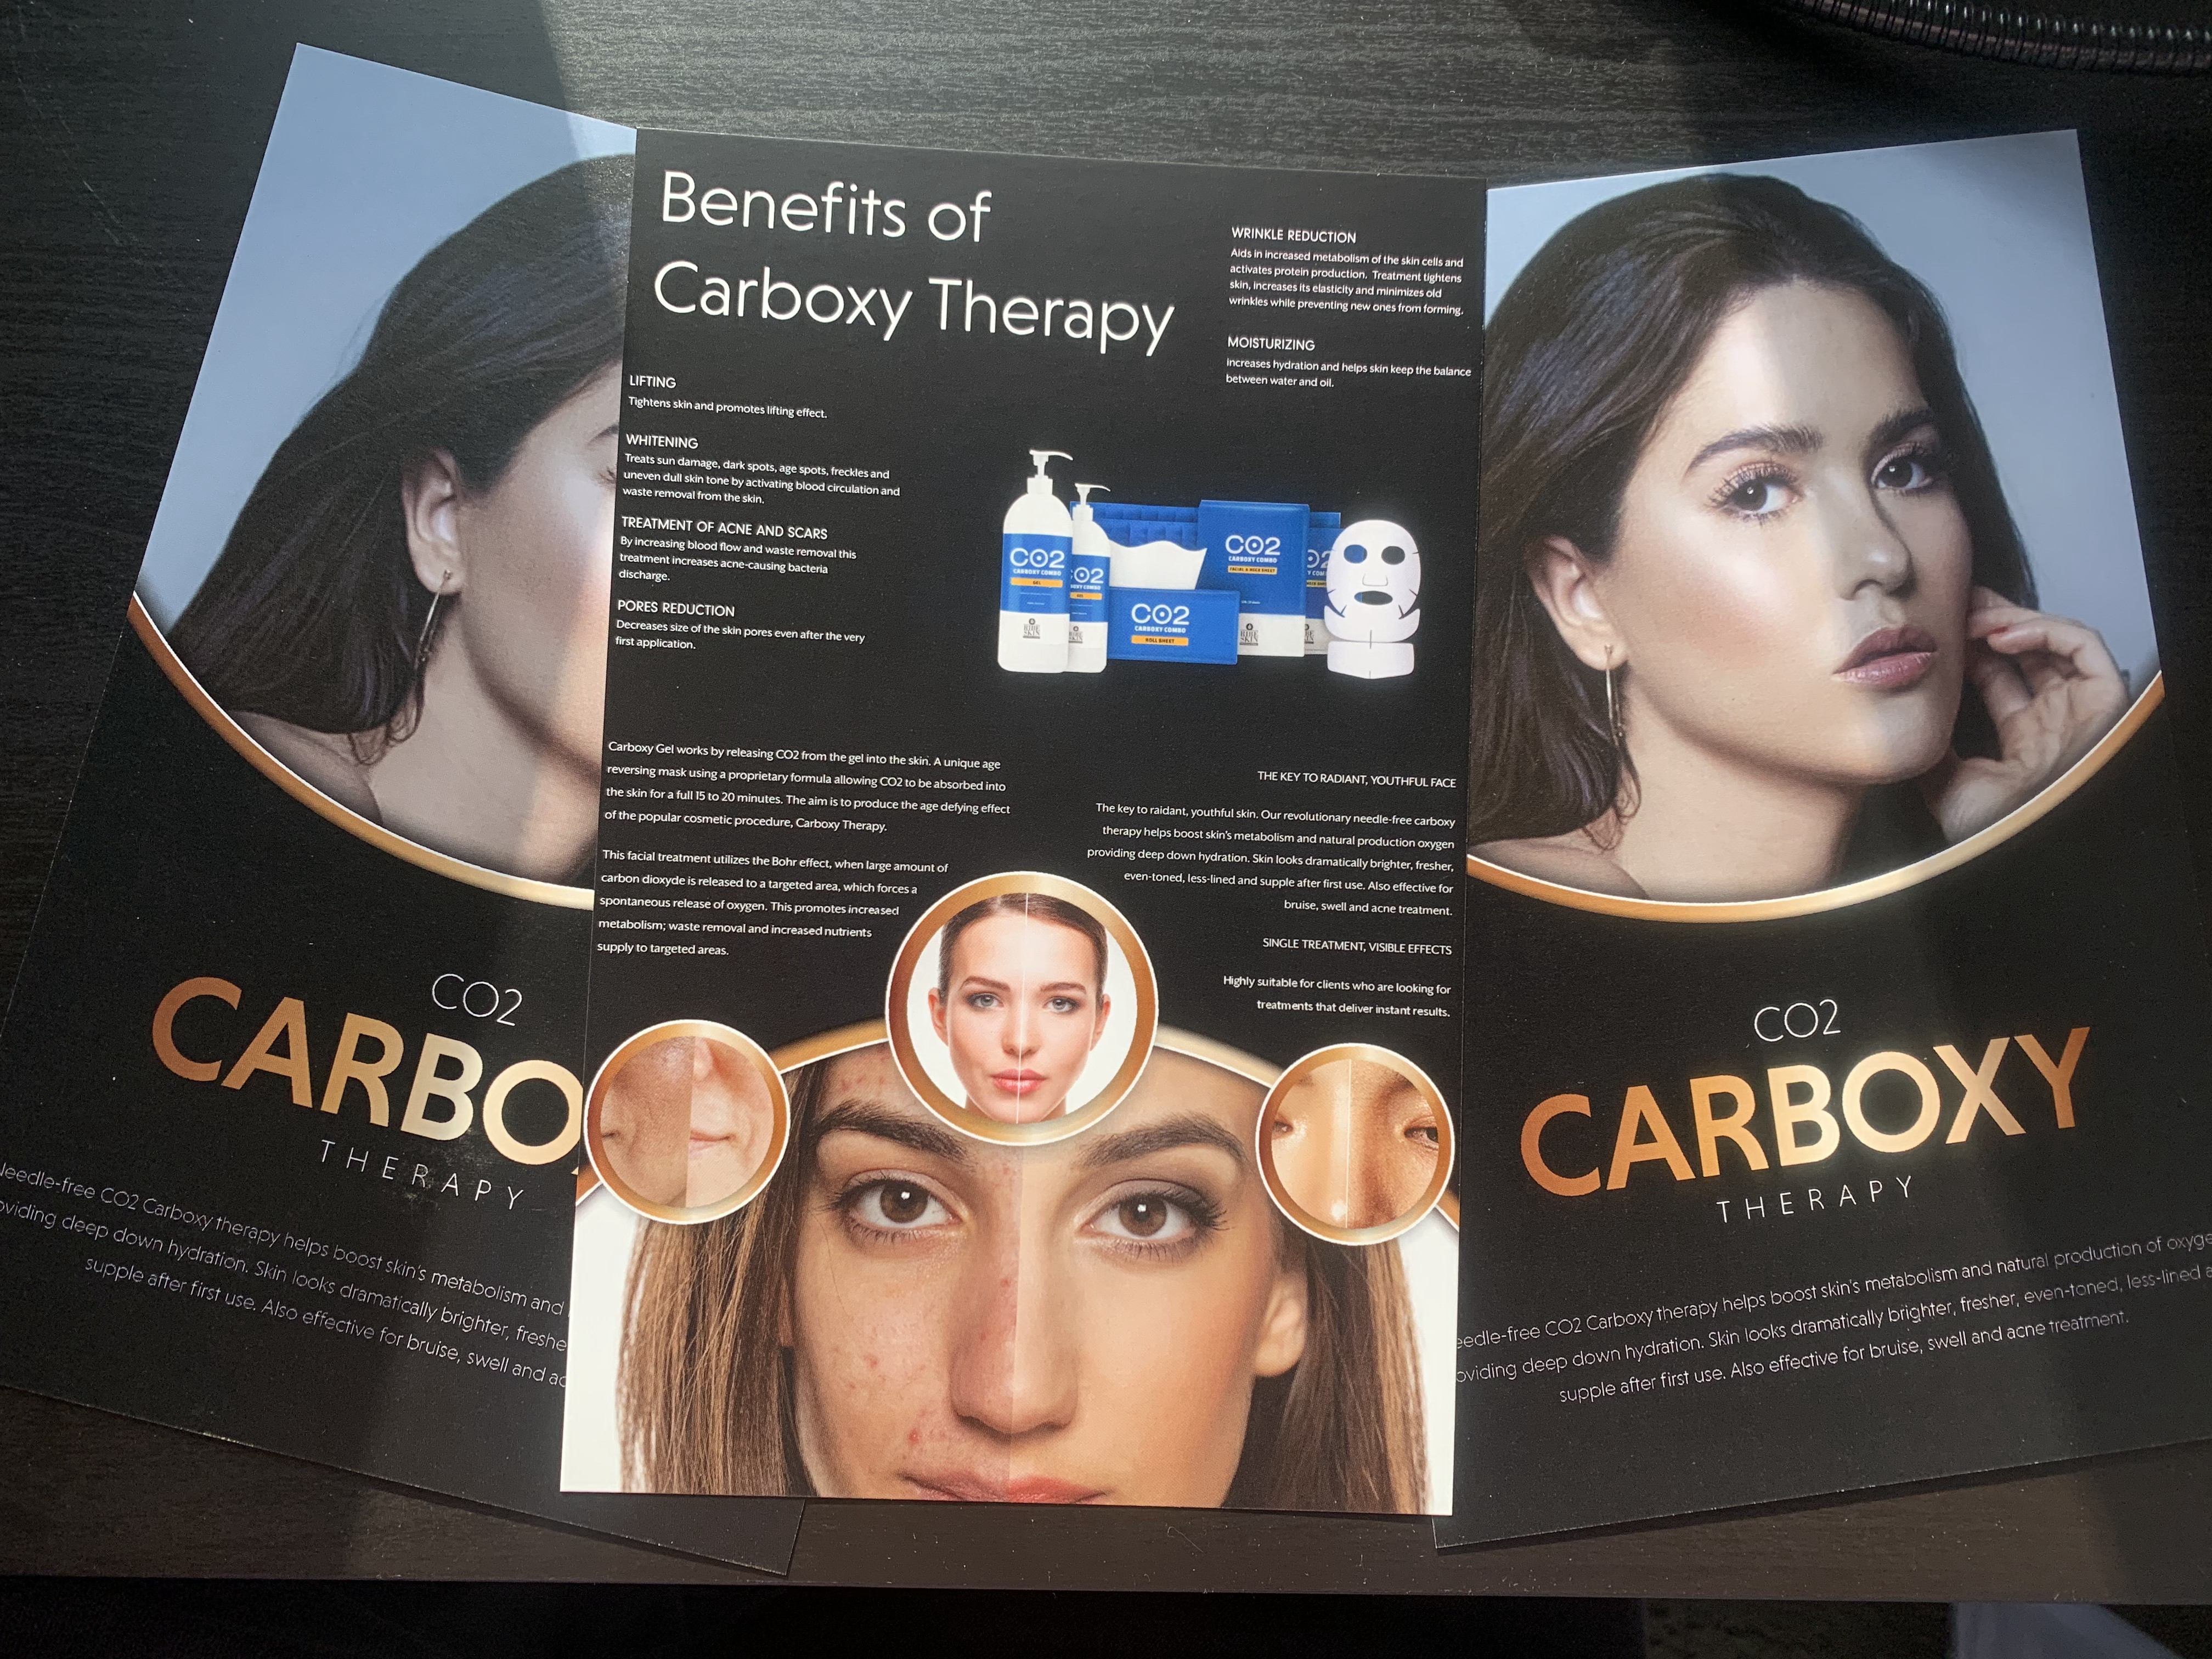 Carboxy Therapy - 50 Brochures Image